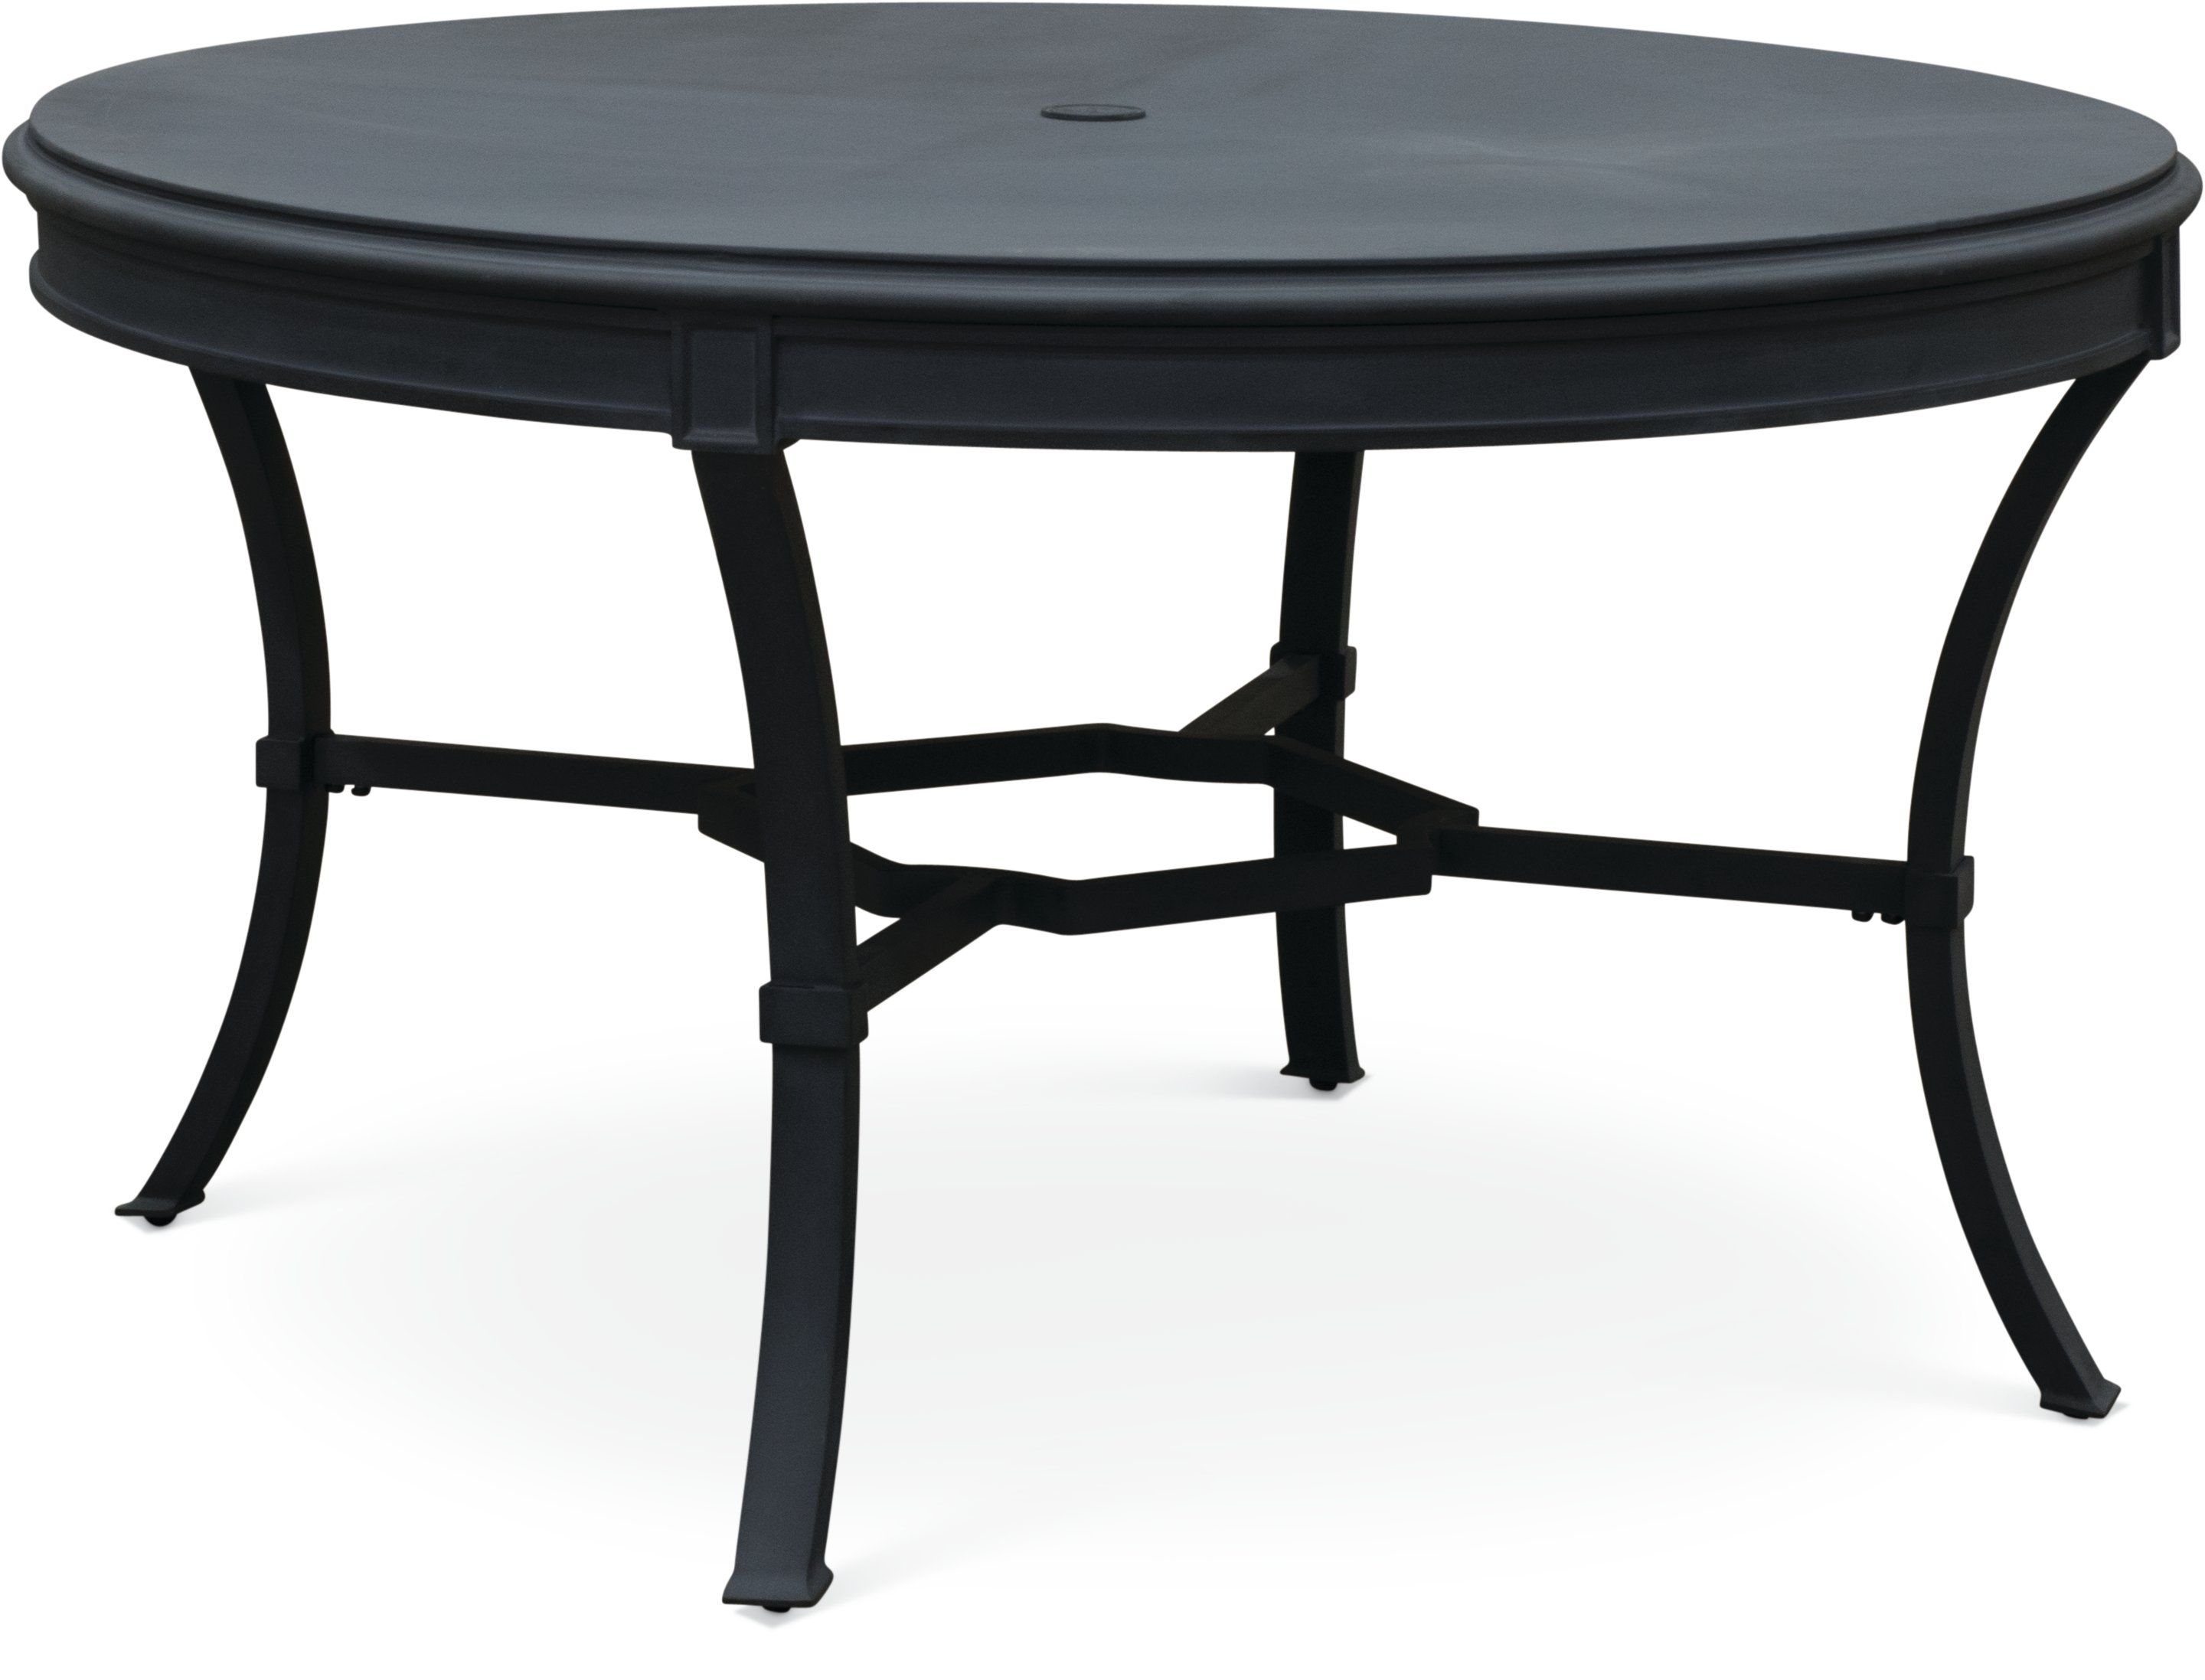 54 Inch Blue Gray Round Outdoor Patio Table Antioch In 2020 Patio Dining Set Outdoor Dining Table Patio Dining Table